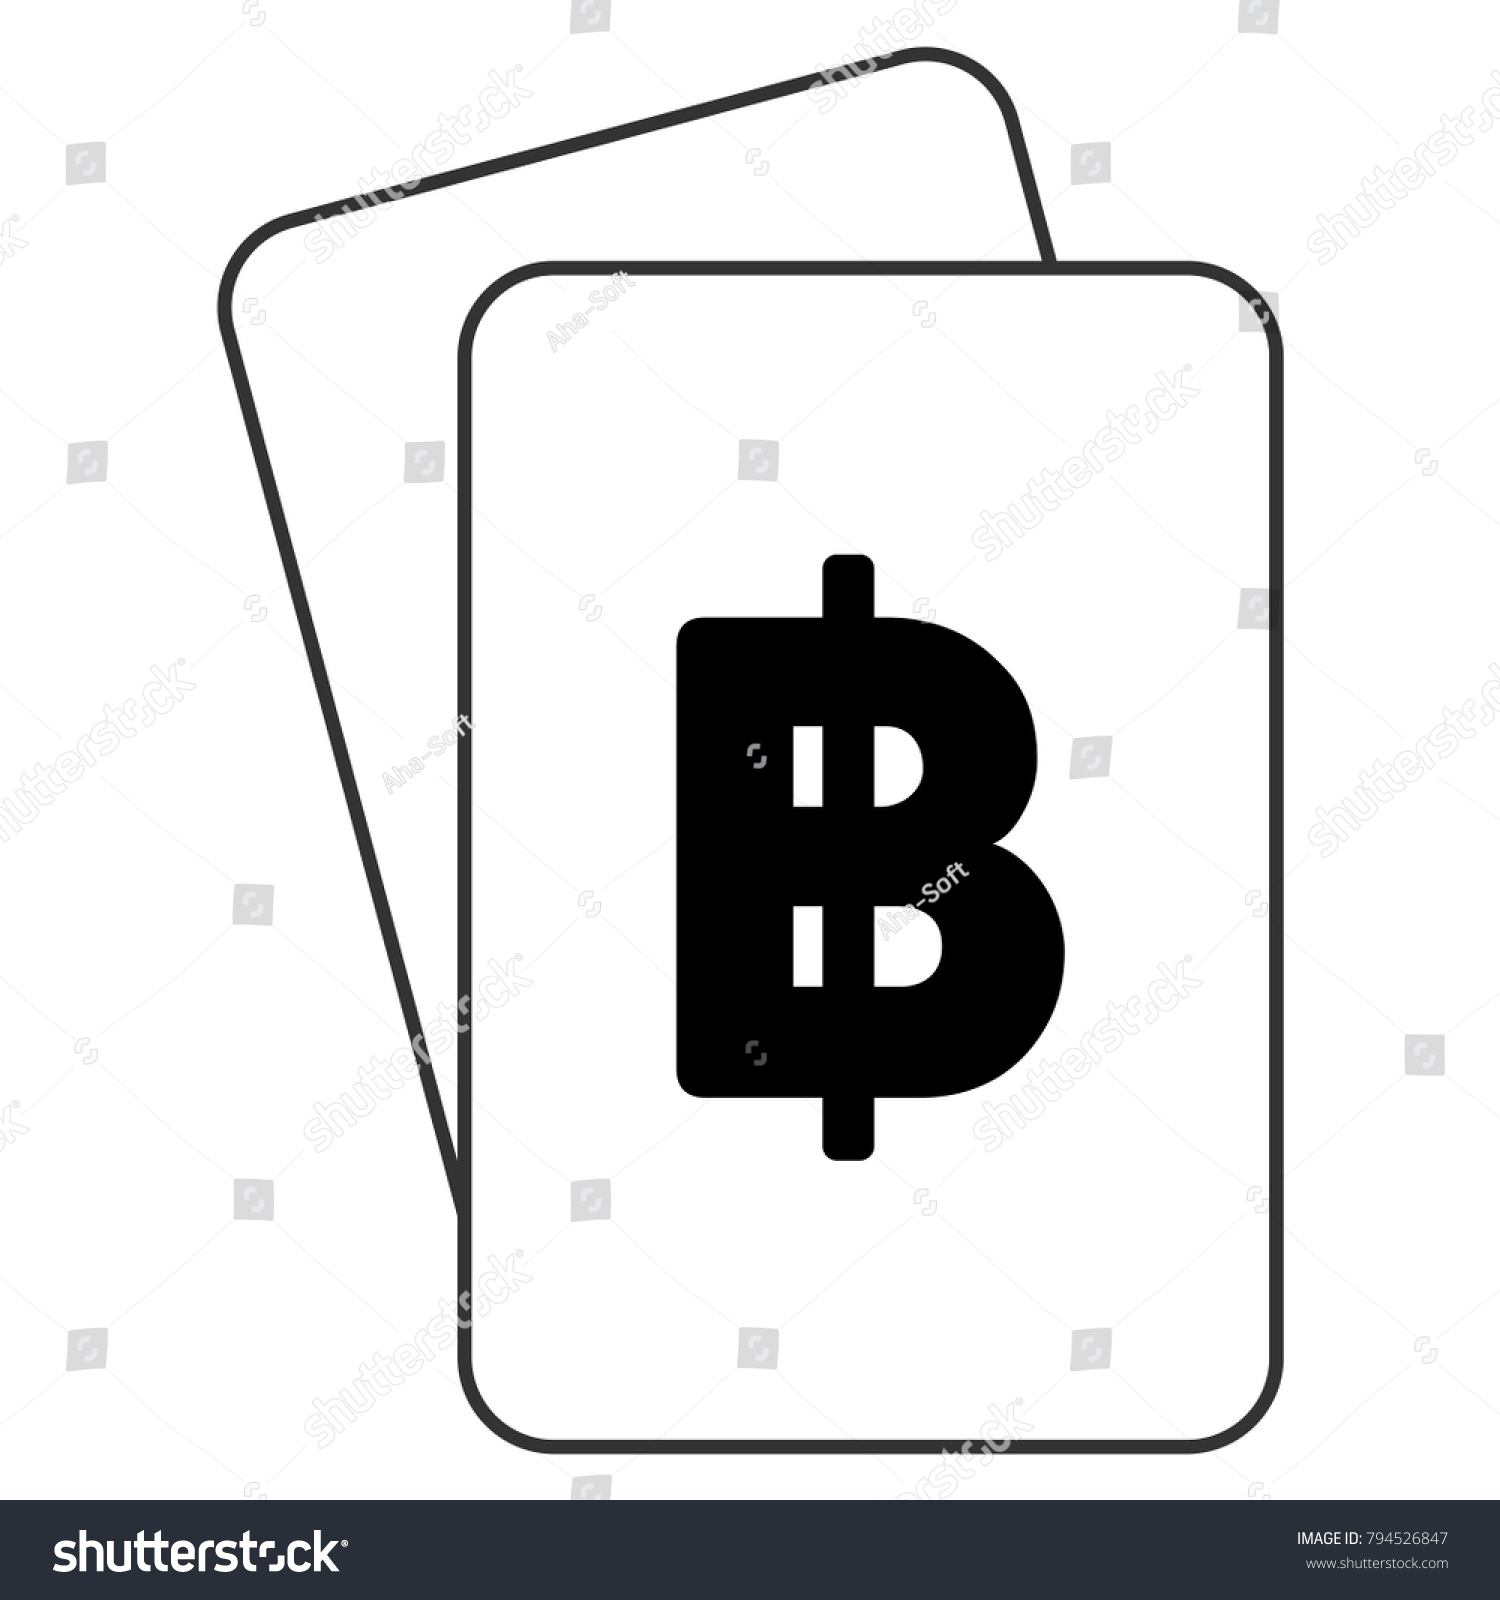 Thai Baht Playing Cards Pictograph Raster Stock Illustration